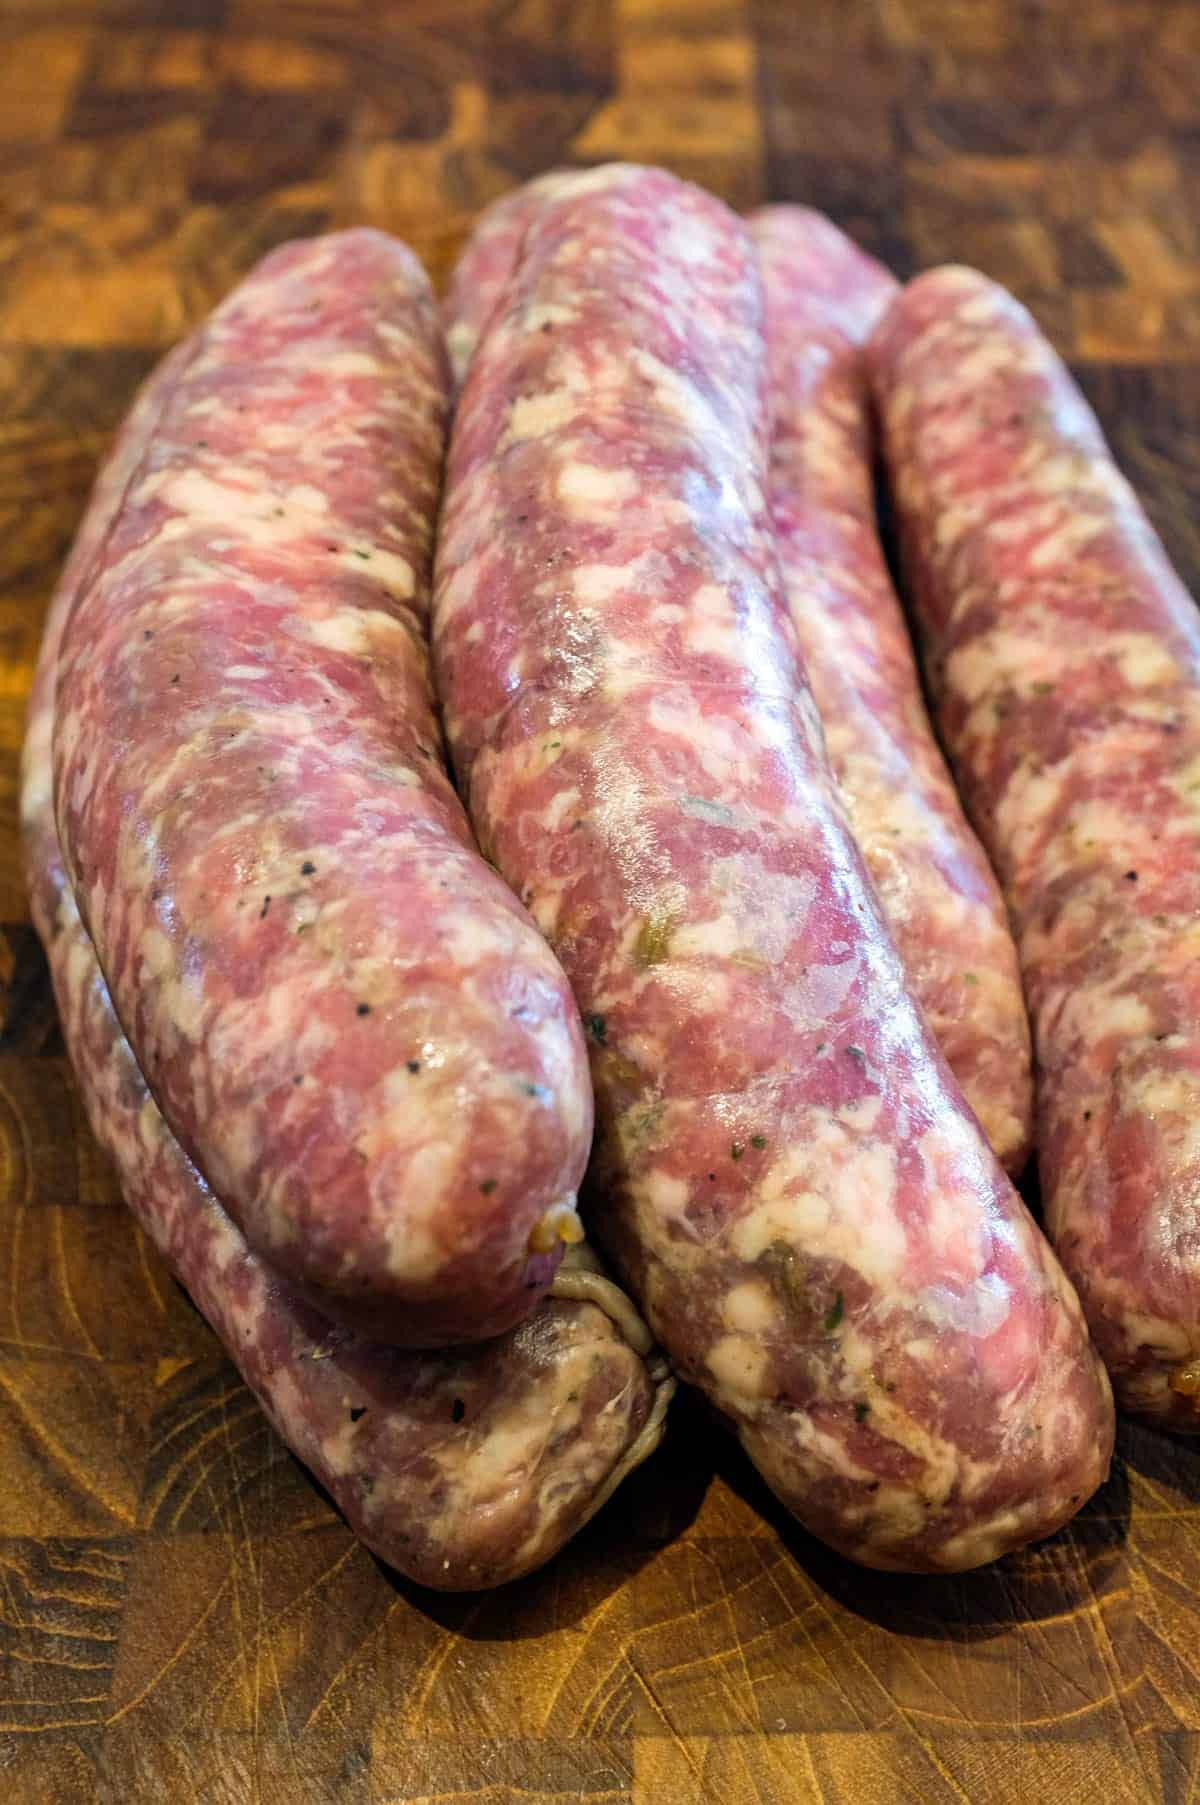 Italian sausage in a pile